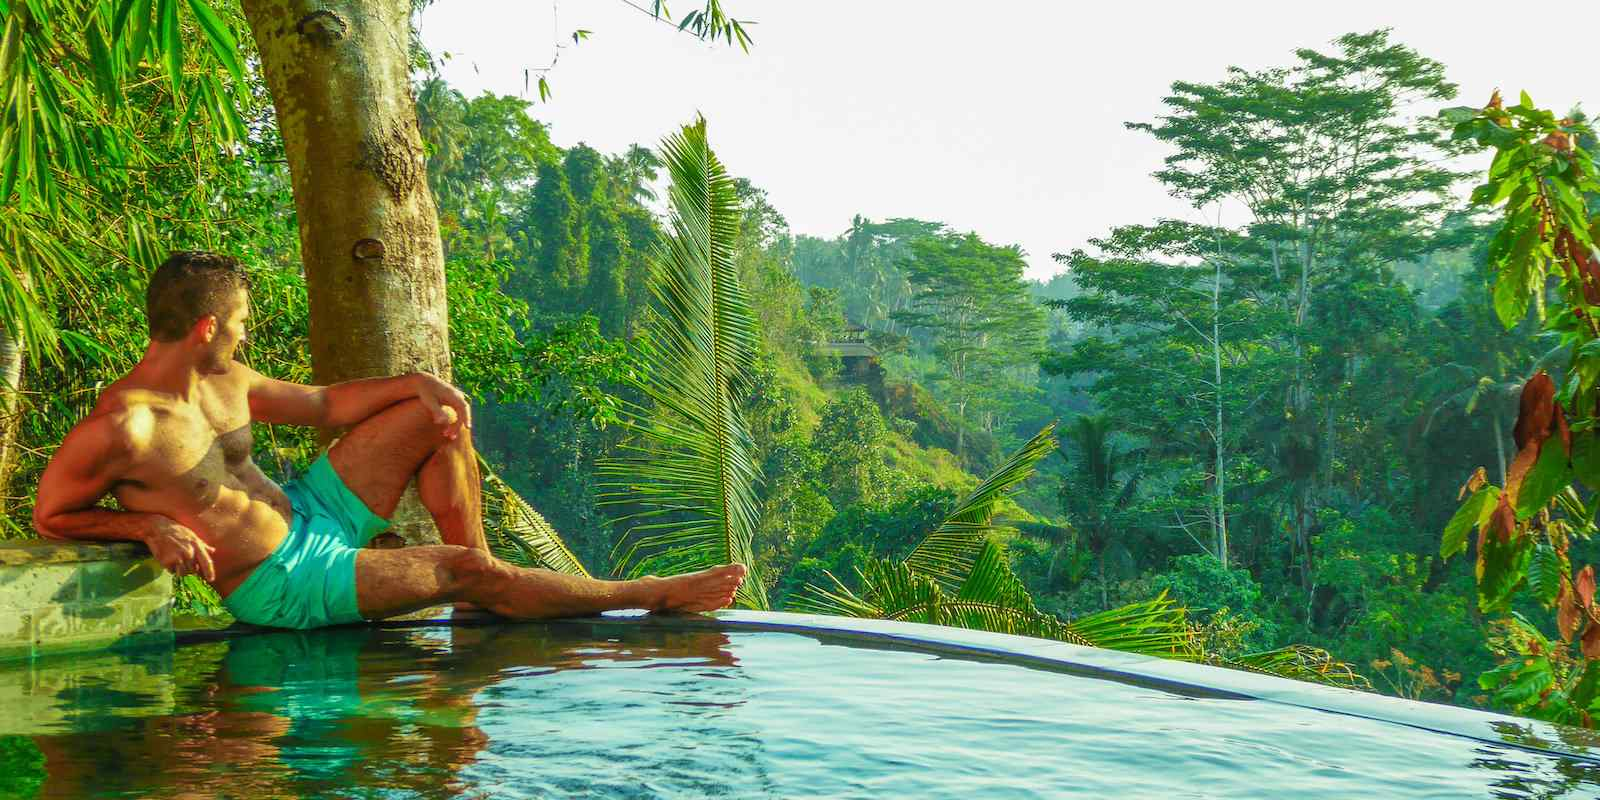 Ubud is a haven of relaxation and culture in Bali that gay travellers will love